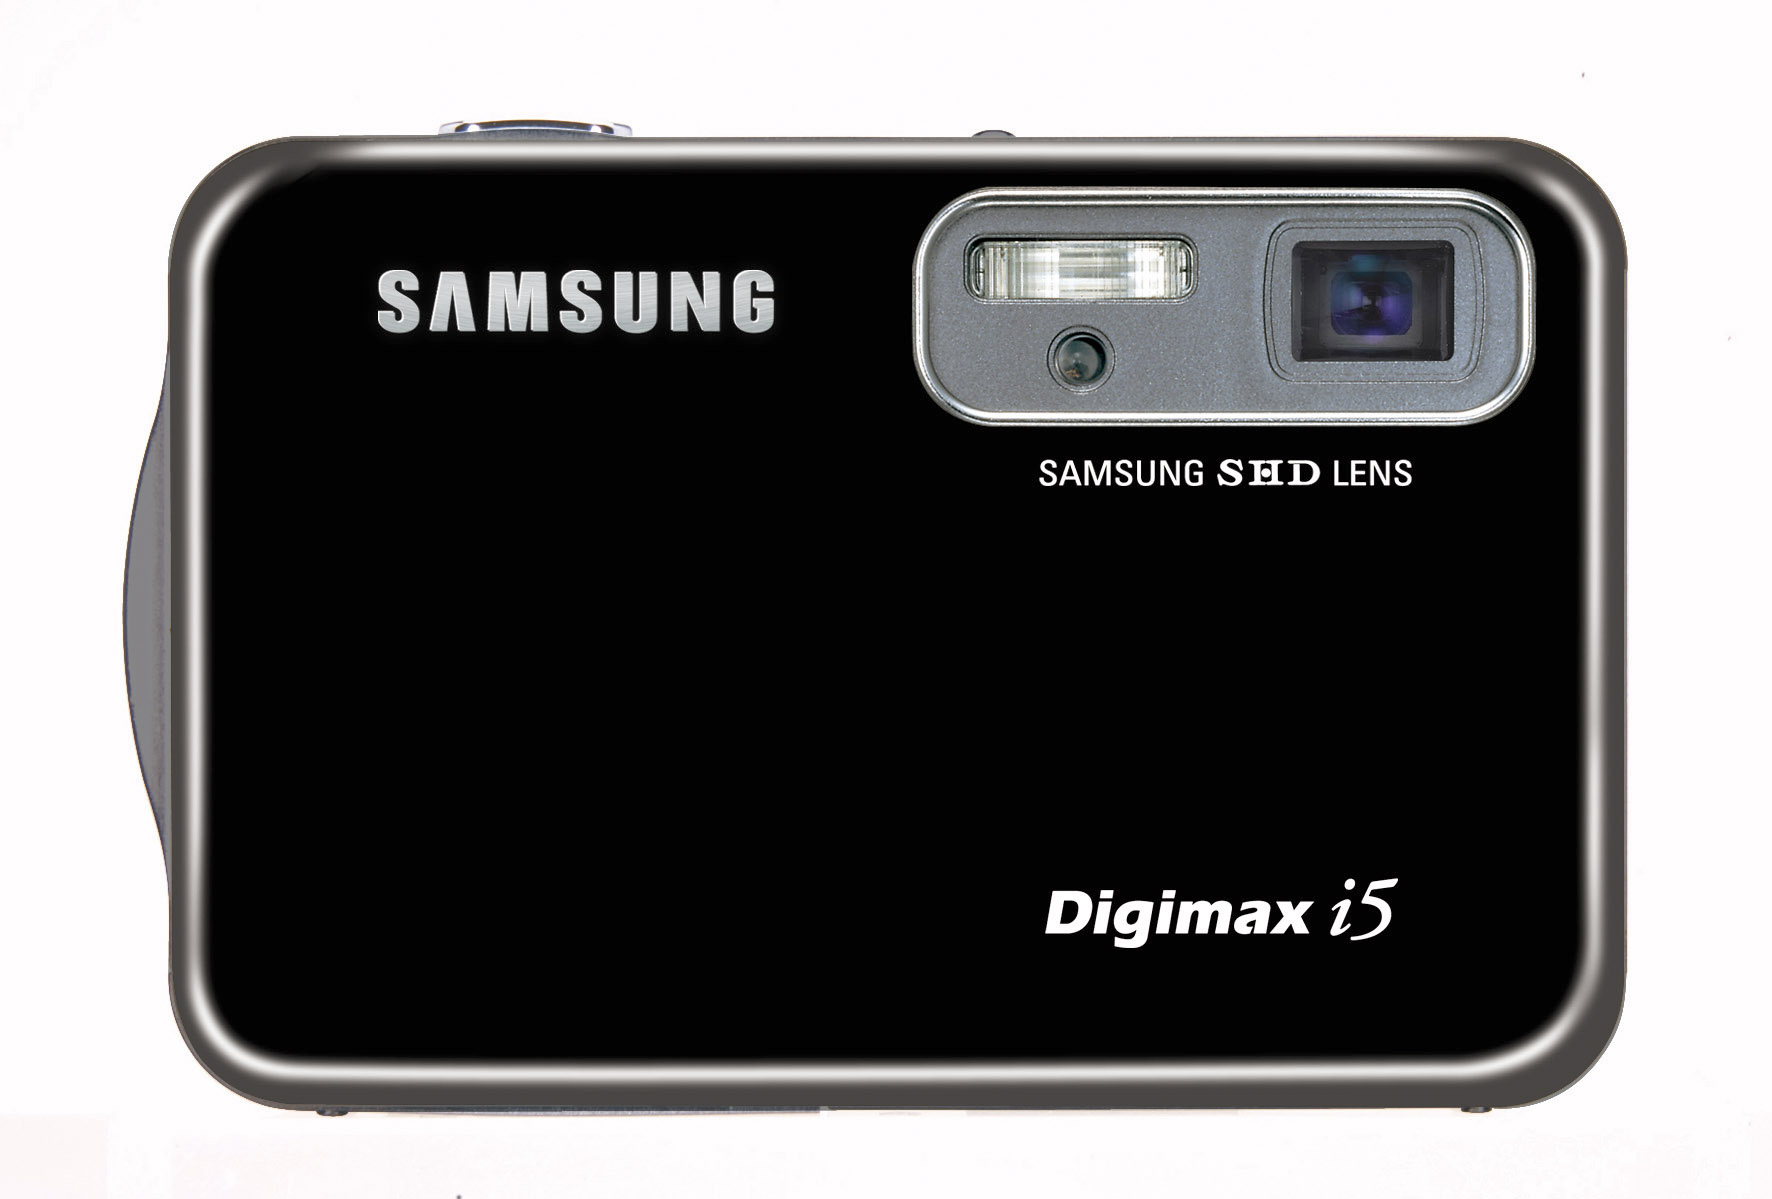 Samsung reveals its 'smallest' digital camera